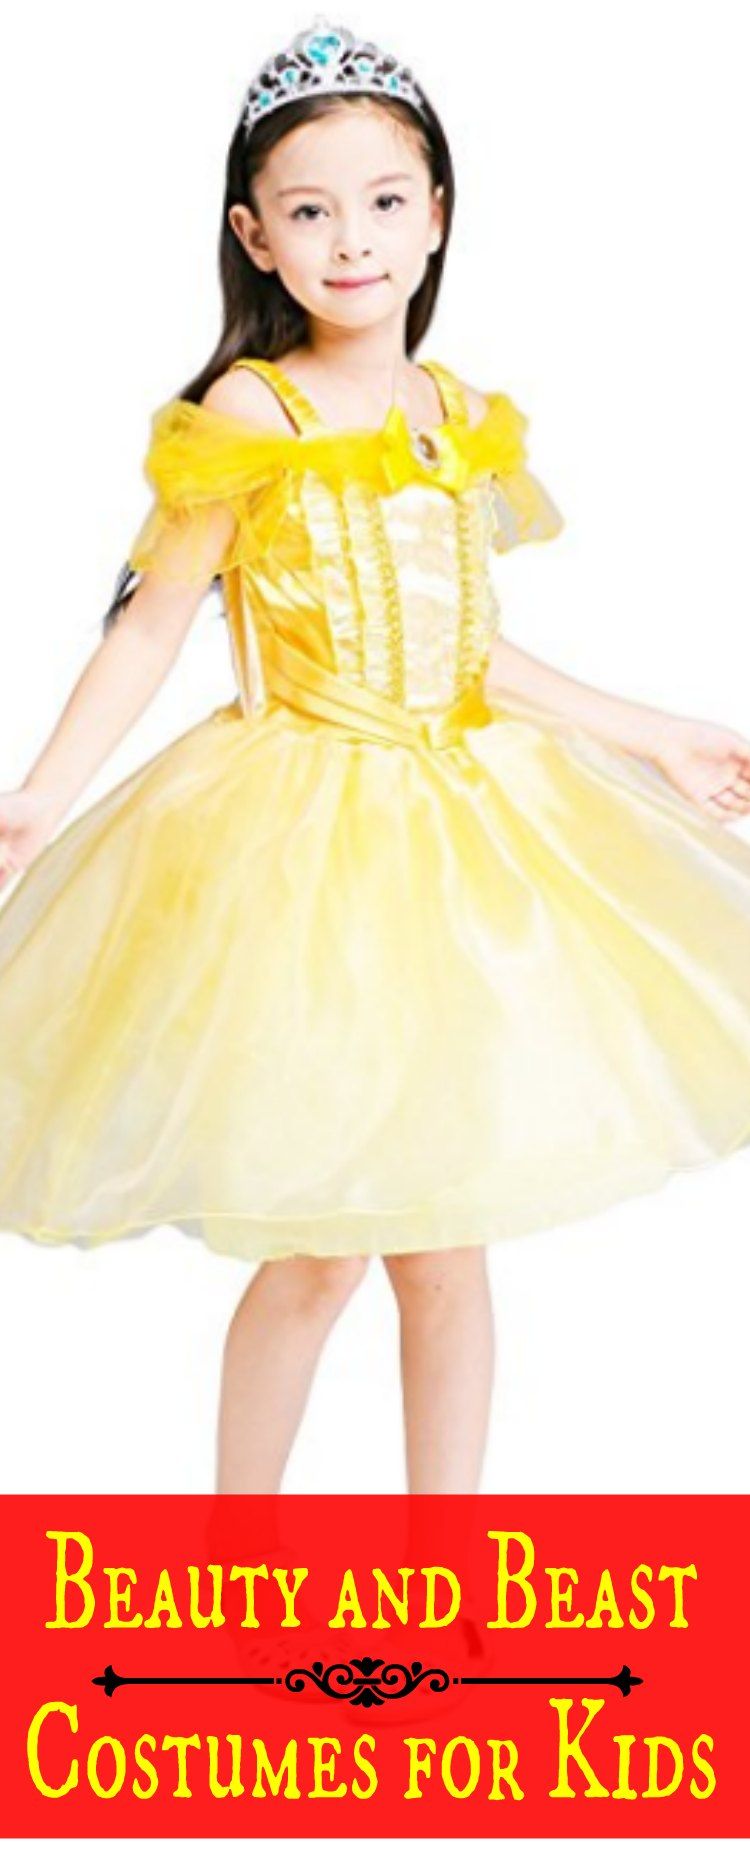 Beauty and Beast Costumes for Kids